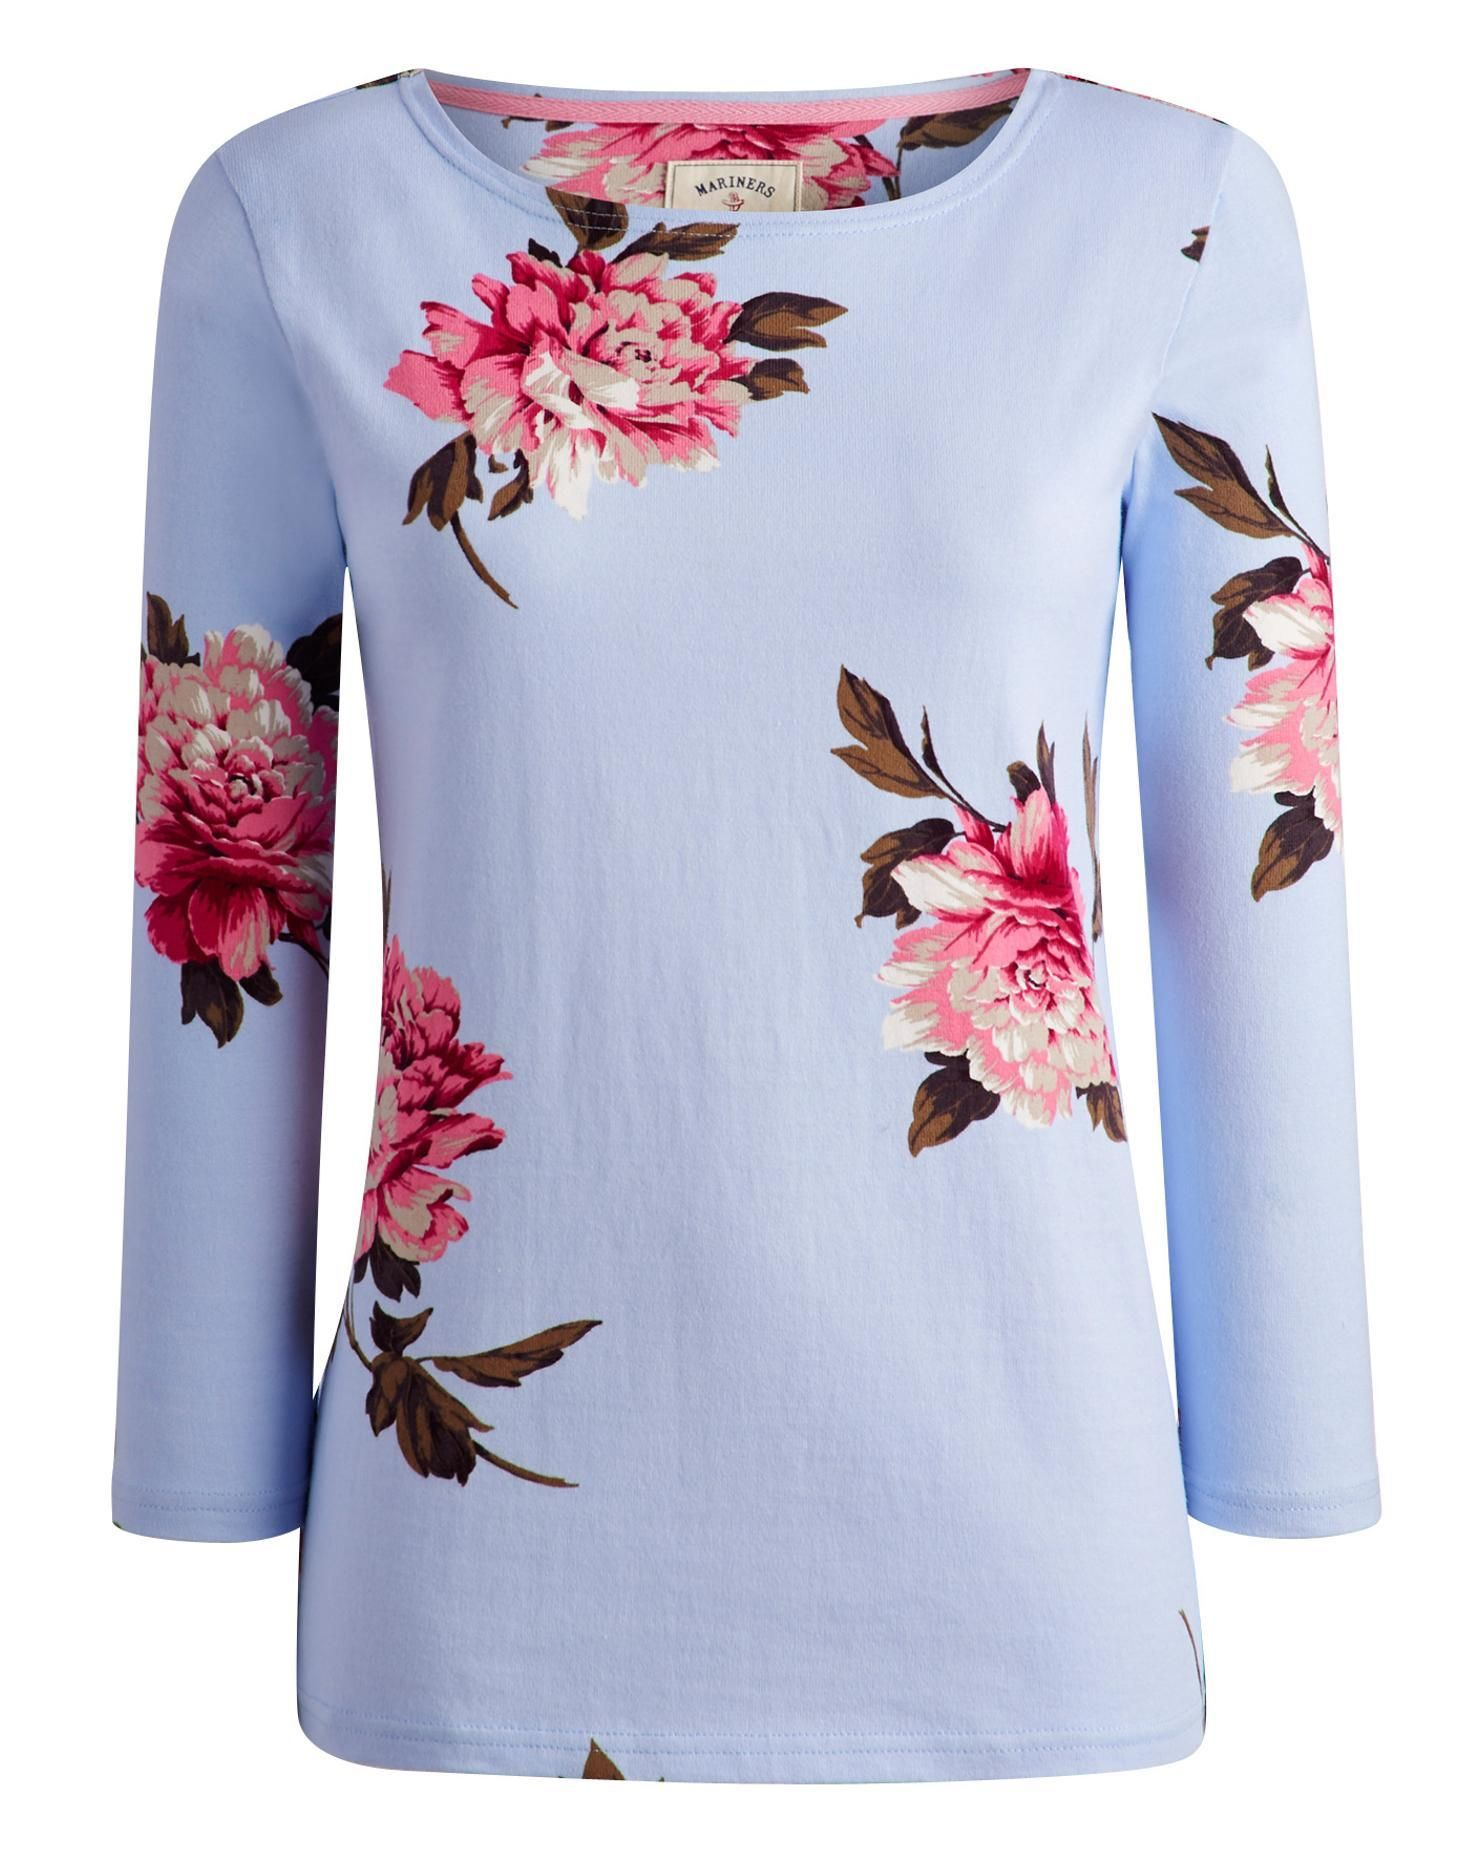 Sky Blue Peony Harbourprint Womens Printed Jersey Top | Joules UK